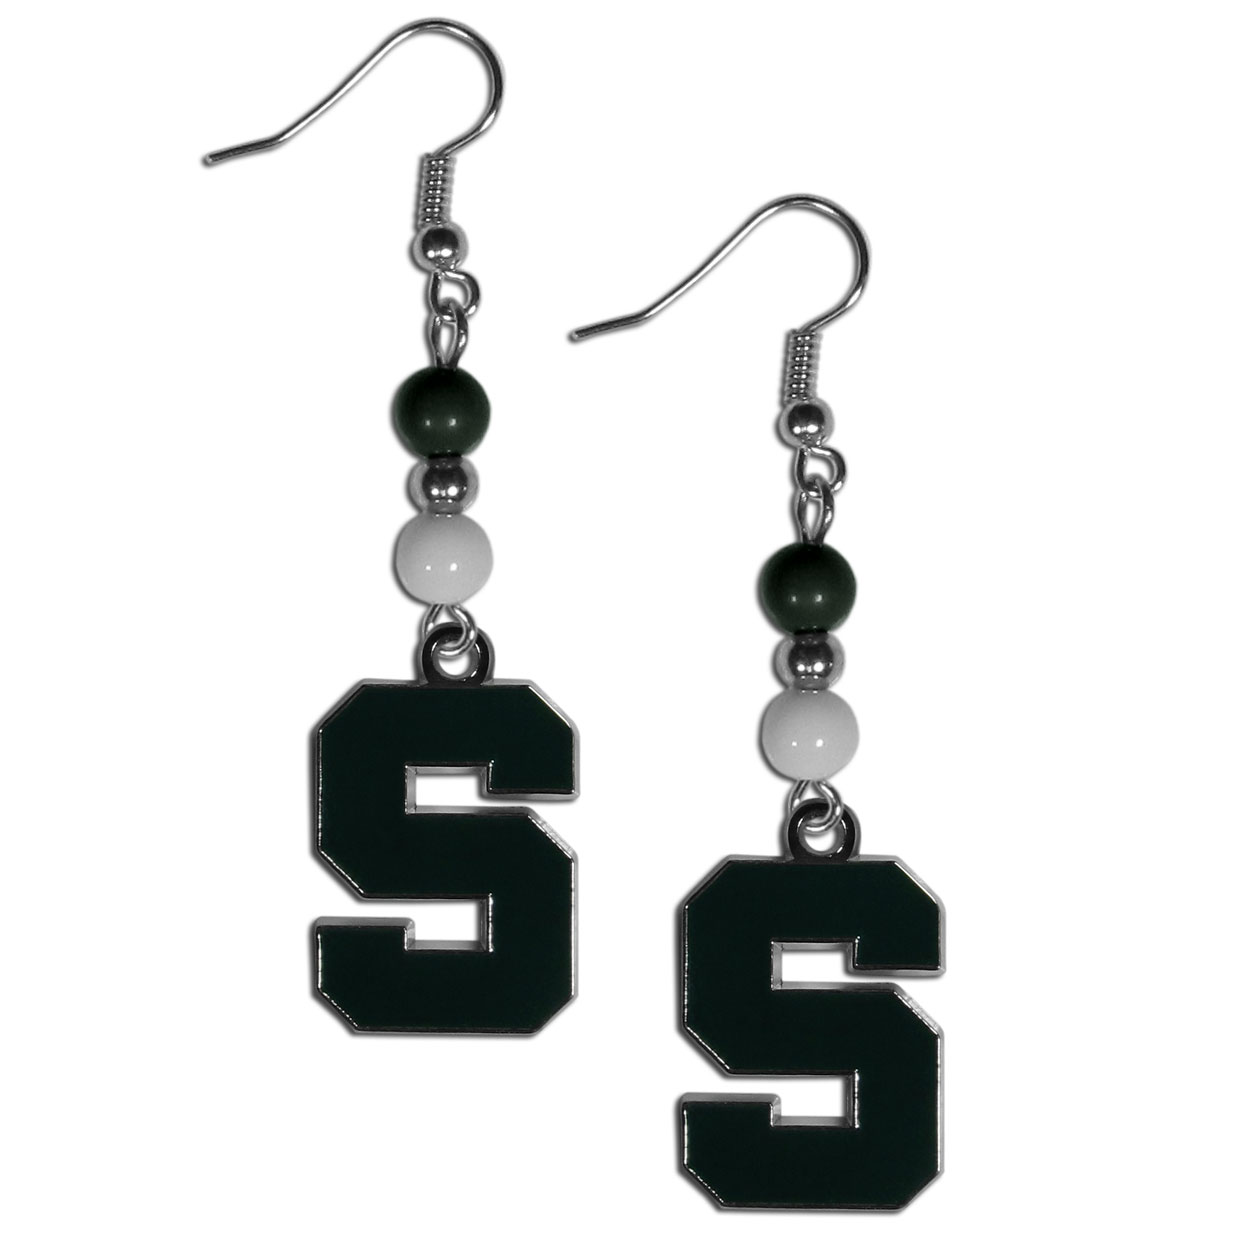 Michigan St. Spartans Fan Bead Dangle Earrings - Love your team, show it off with our Michigan St. Spartans bead dangle earrings! These super cute earrings hang approximately 2 inches and features 2 team colored beads and a high polish team charm. A must have for game day!